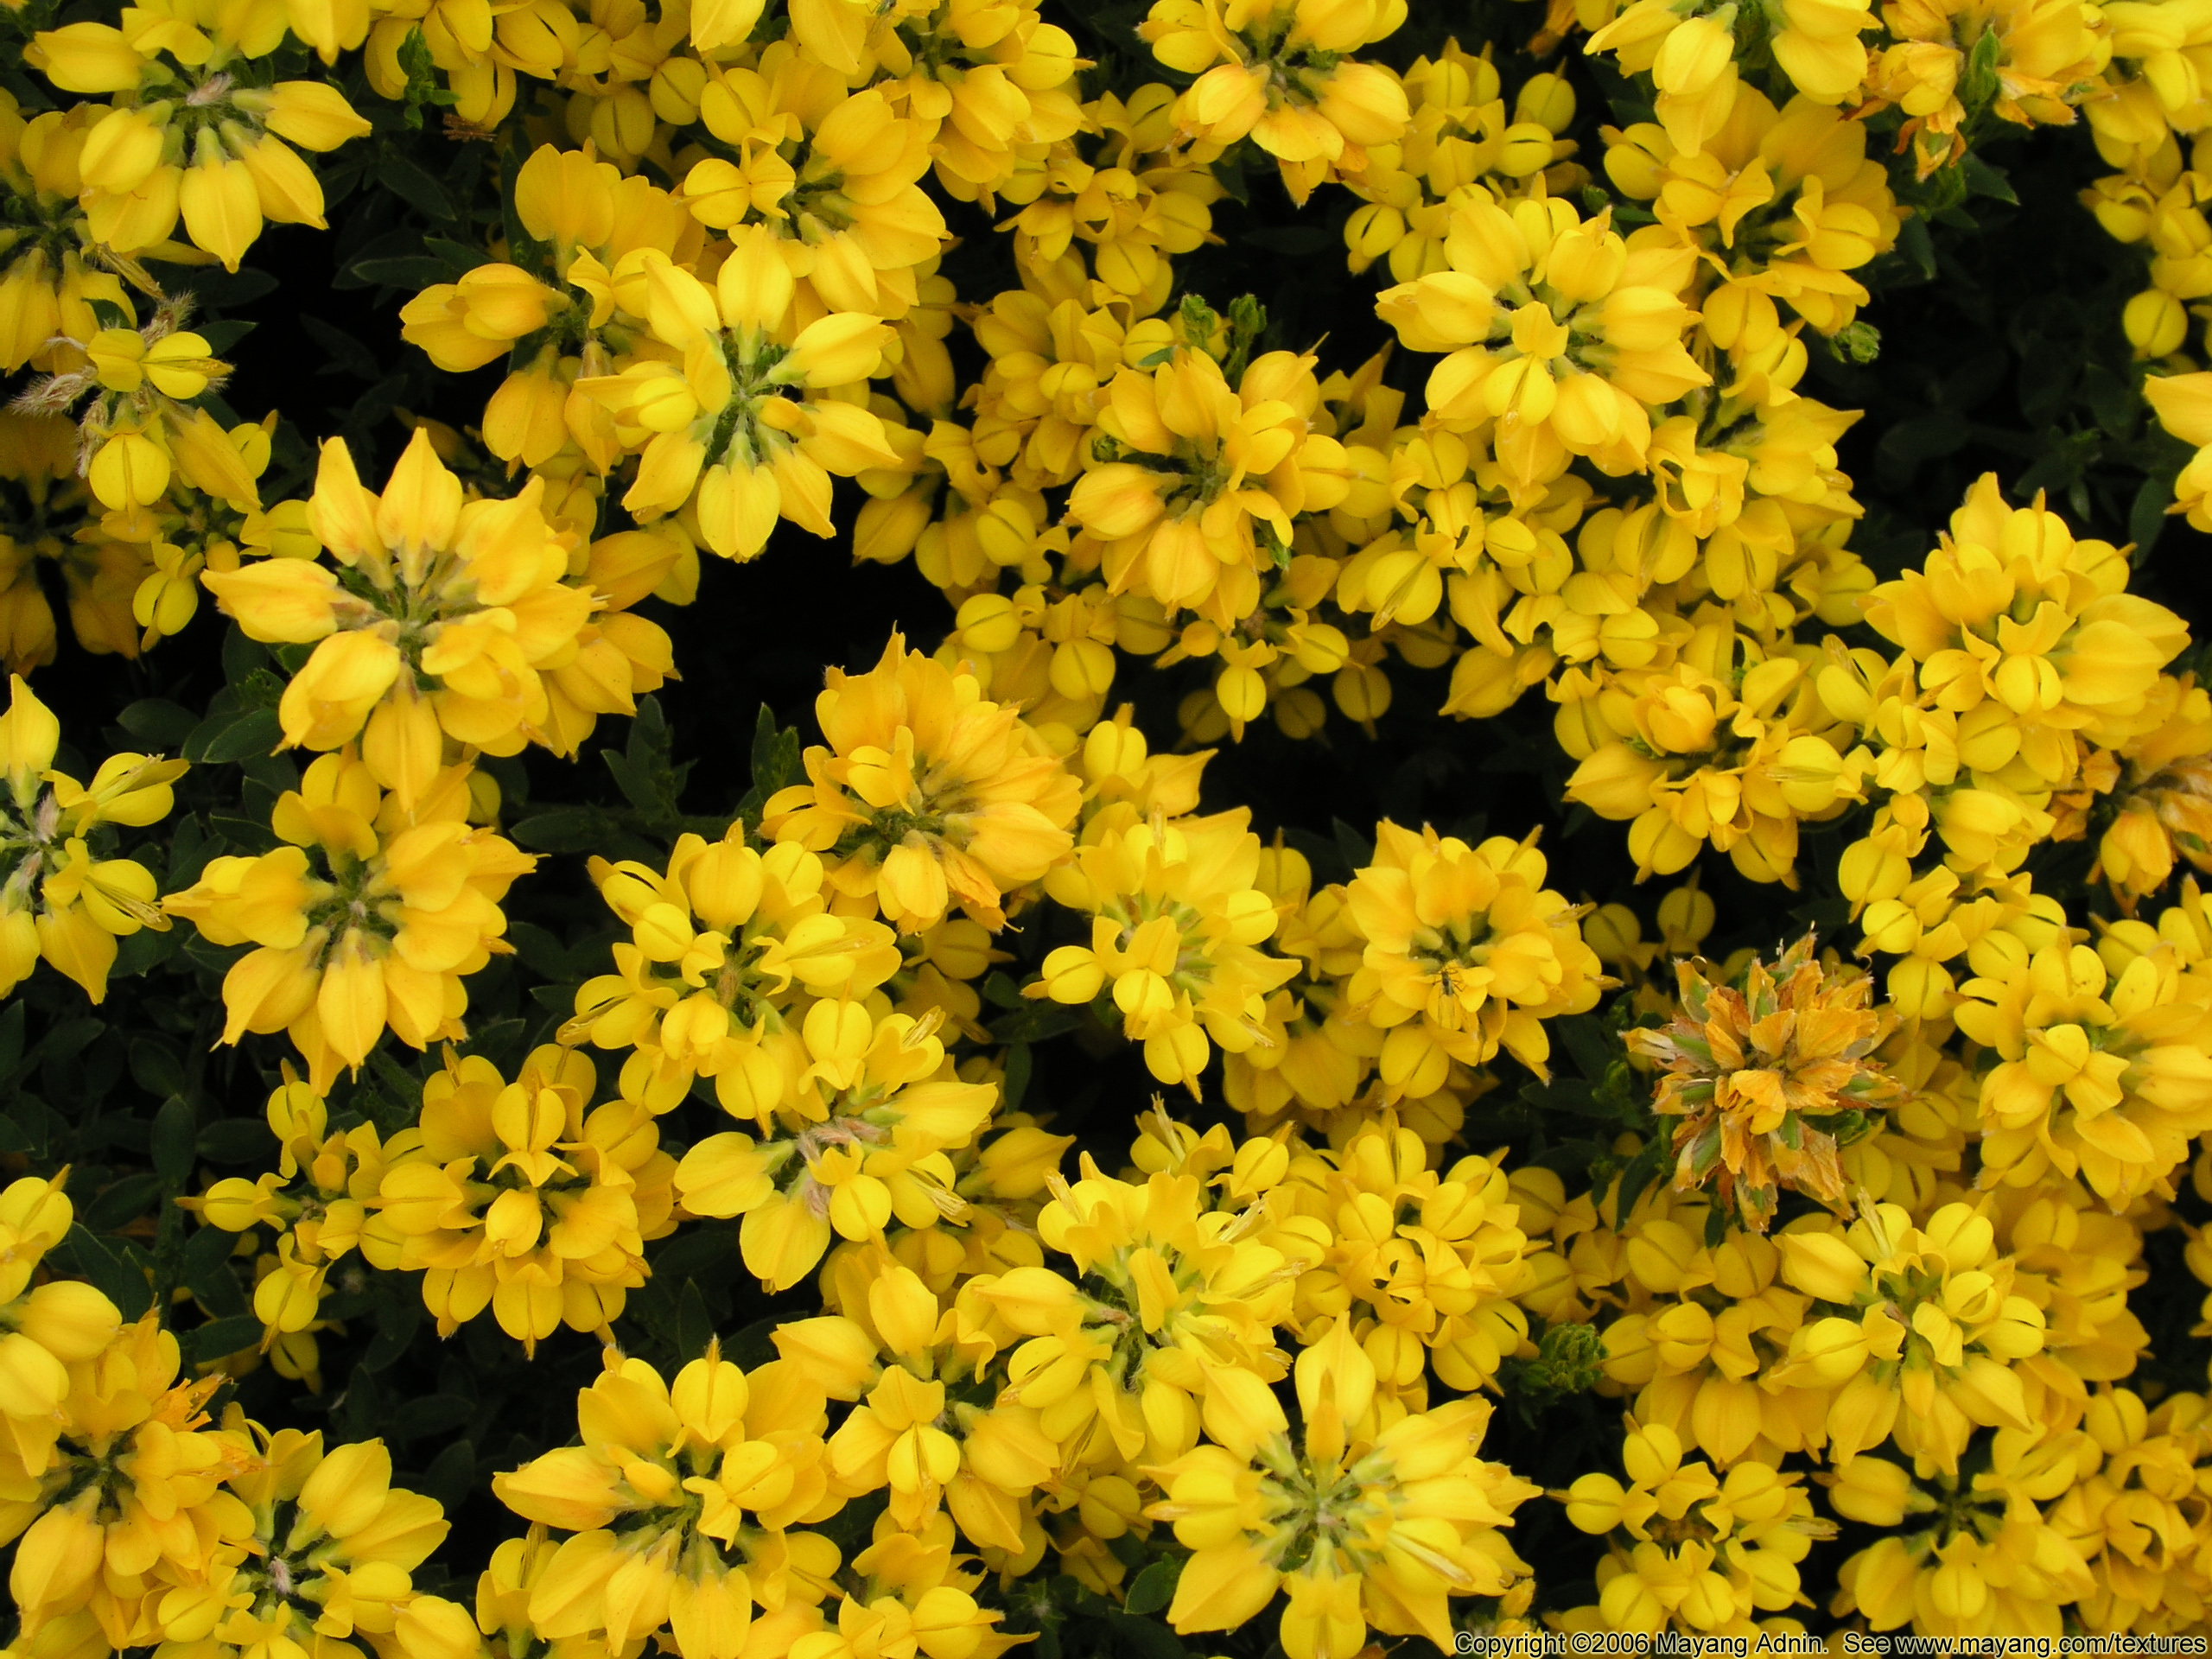 Plants with yellow flowers 17 cool wallpaper hdflowerwallpaper plants with yellow flowers free wallpaper mightylinksfo